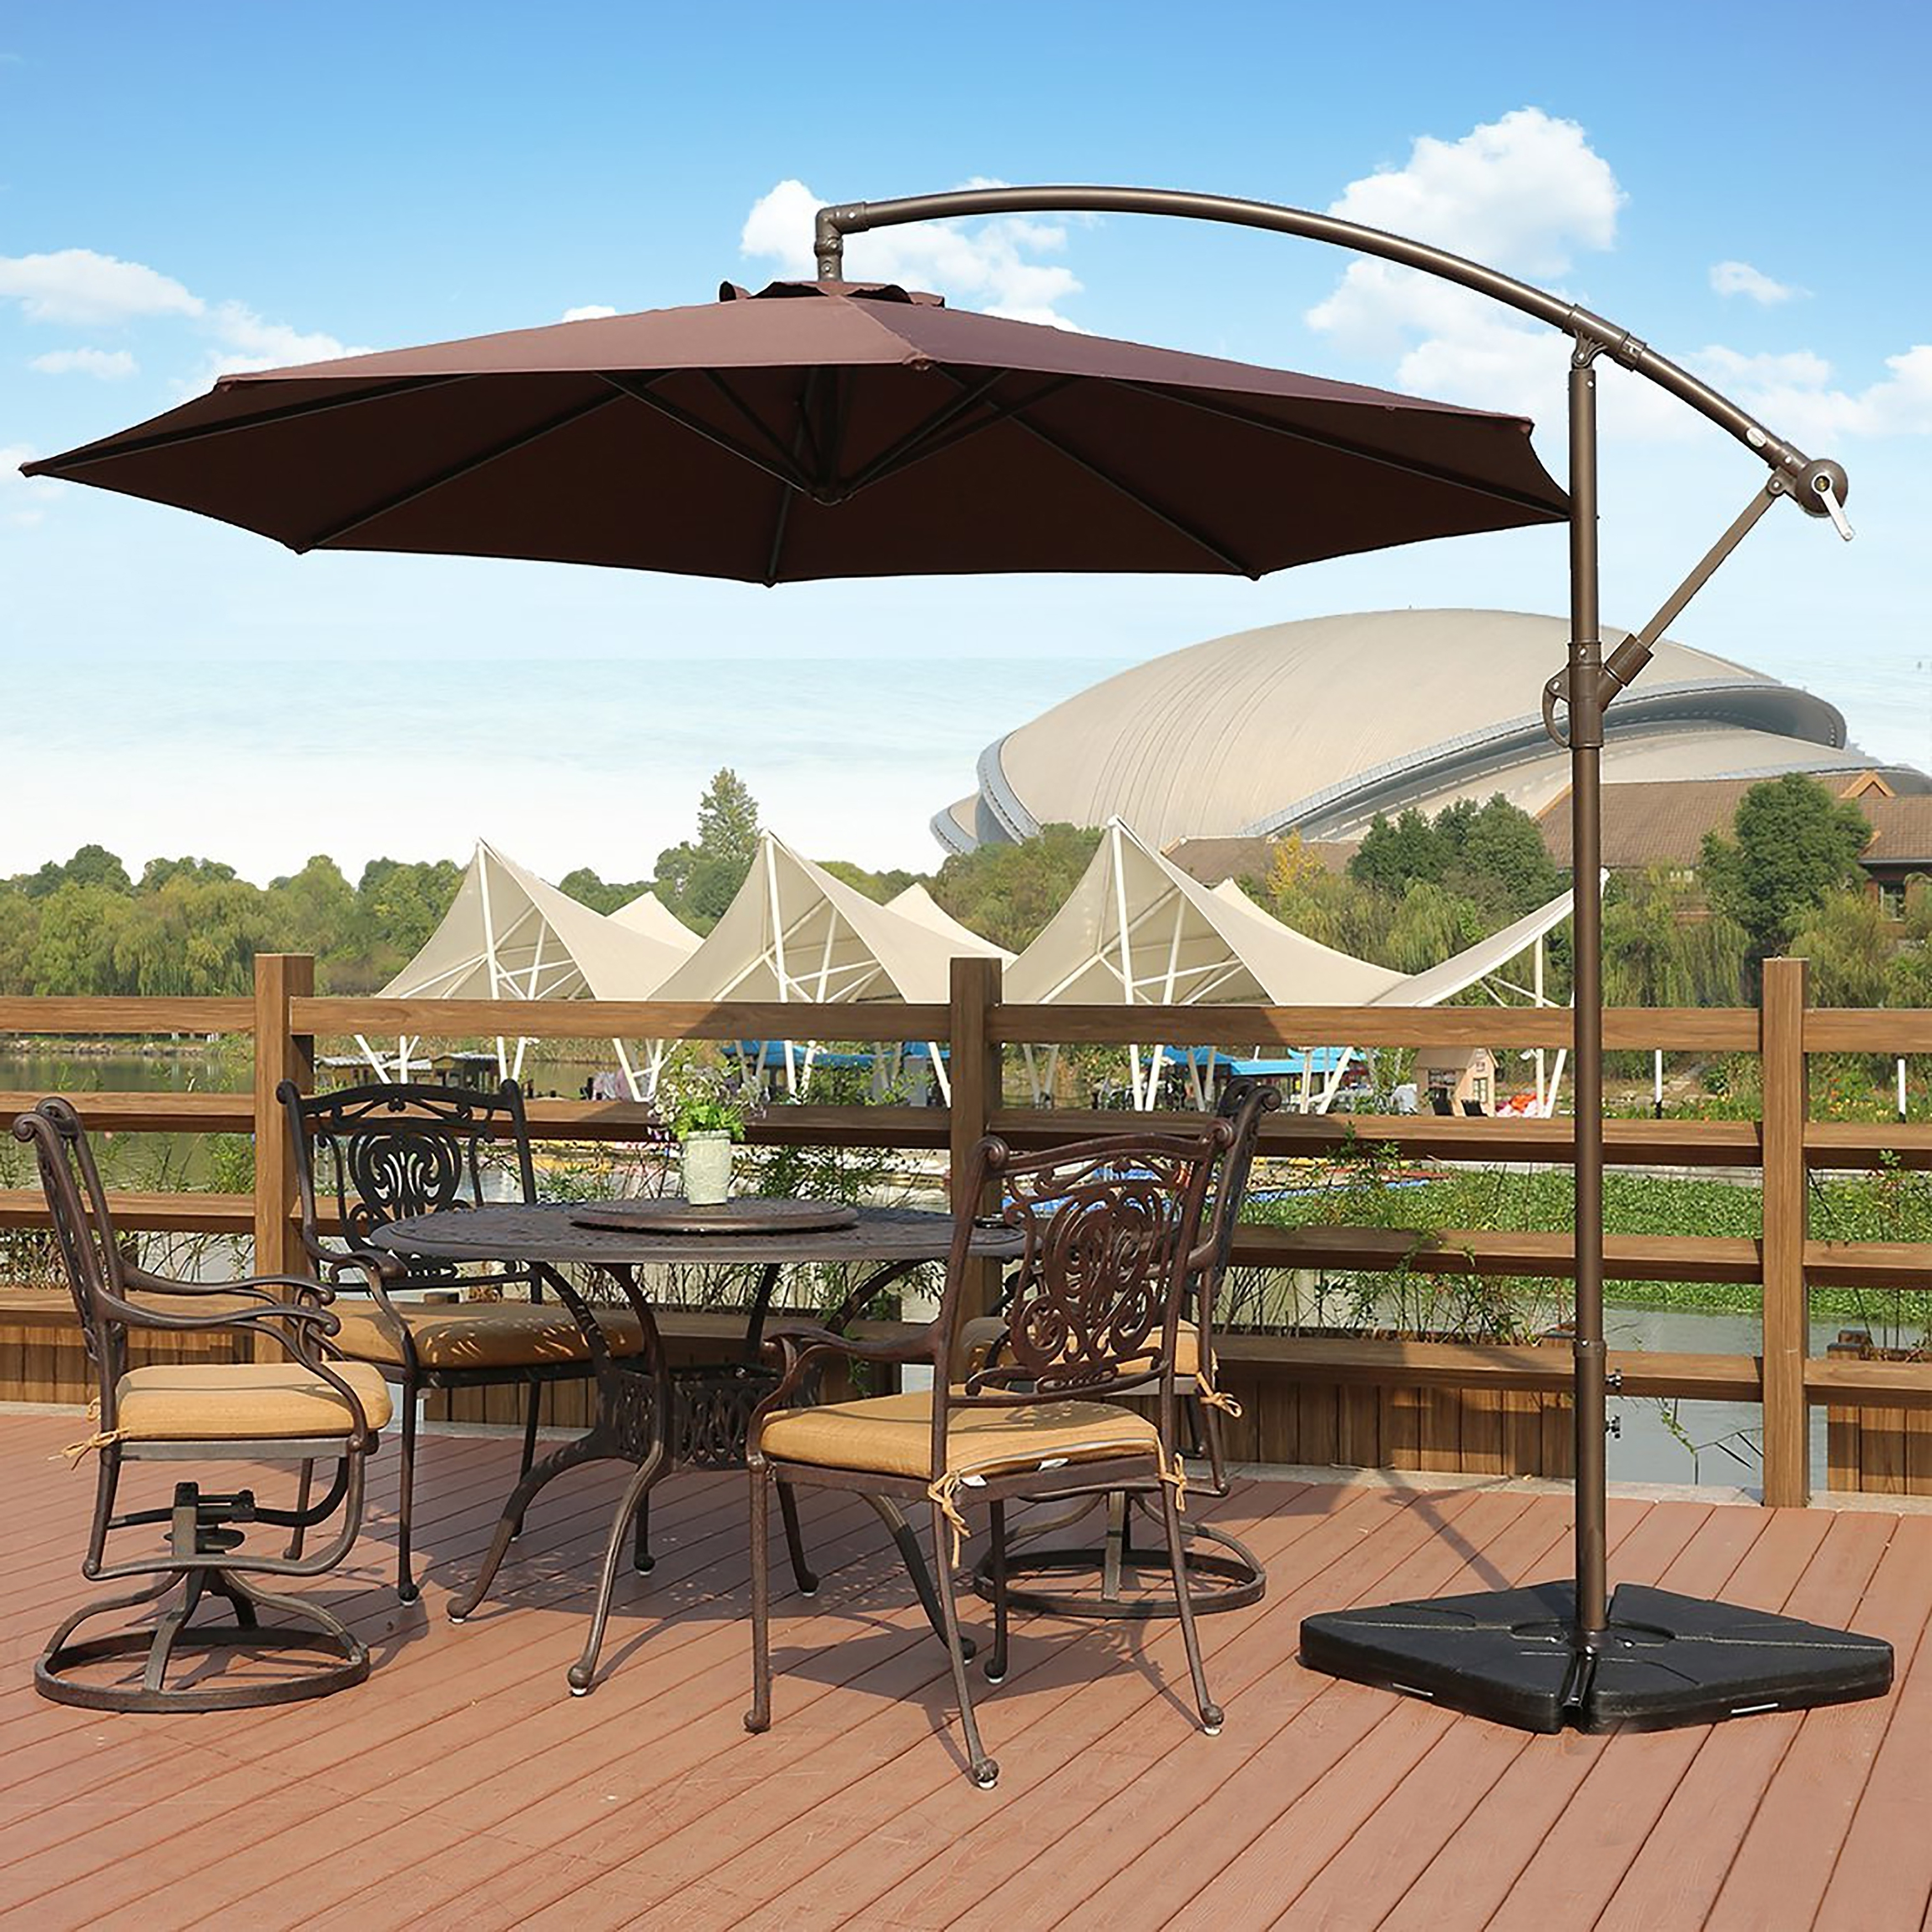 Weller 10 Ft Offset Cantilever Hanging Patio Umbrellawestin With Regard To Preferred Offset Patio Umbrellas (View 20 of 20)